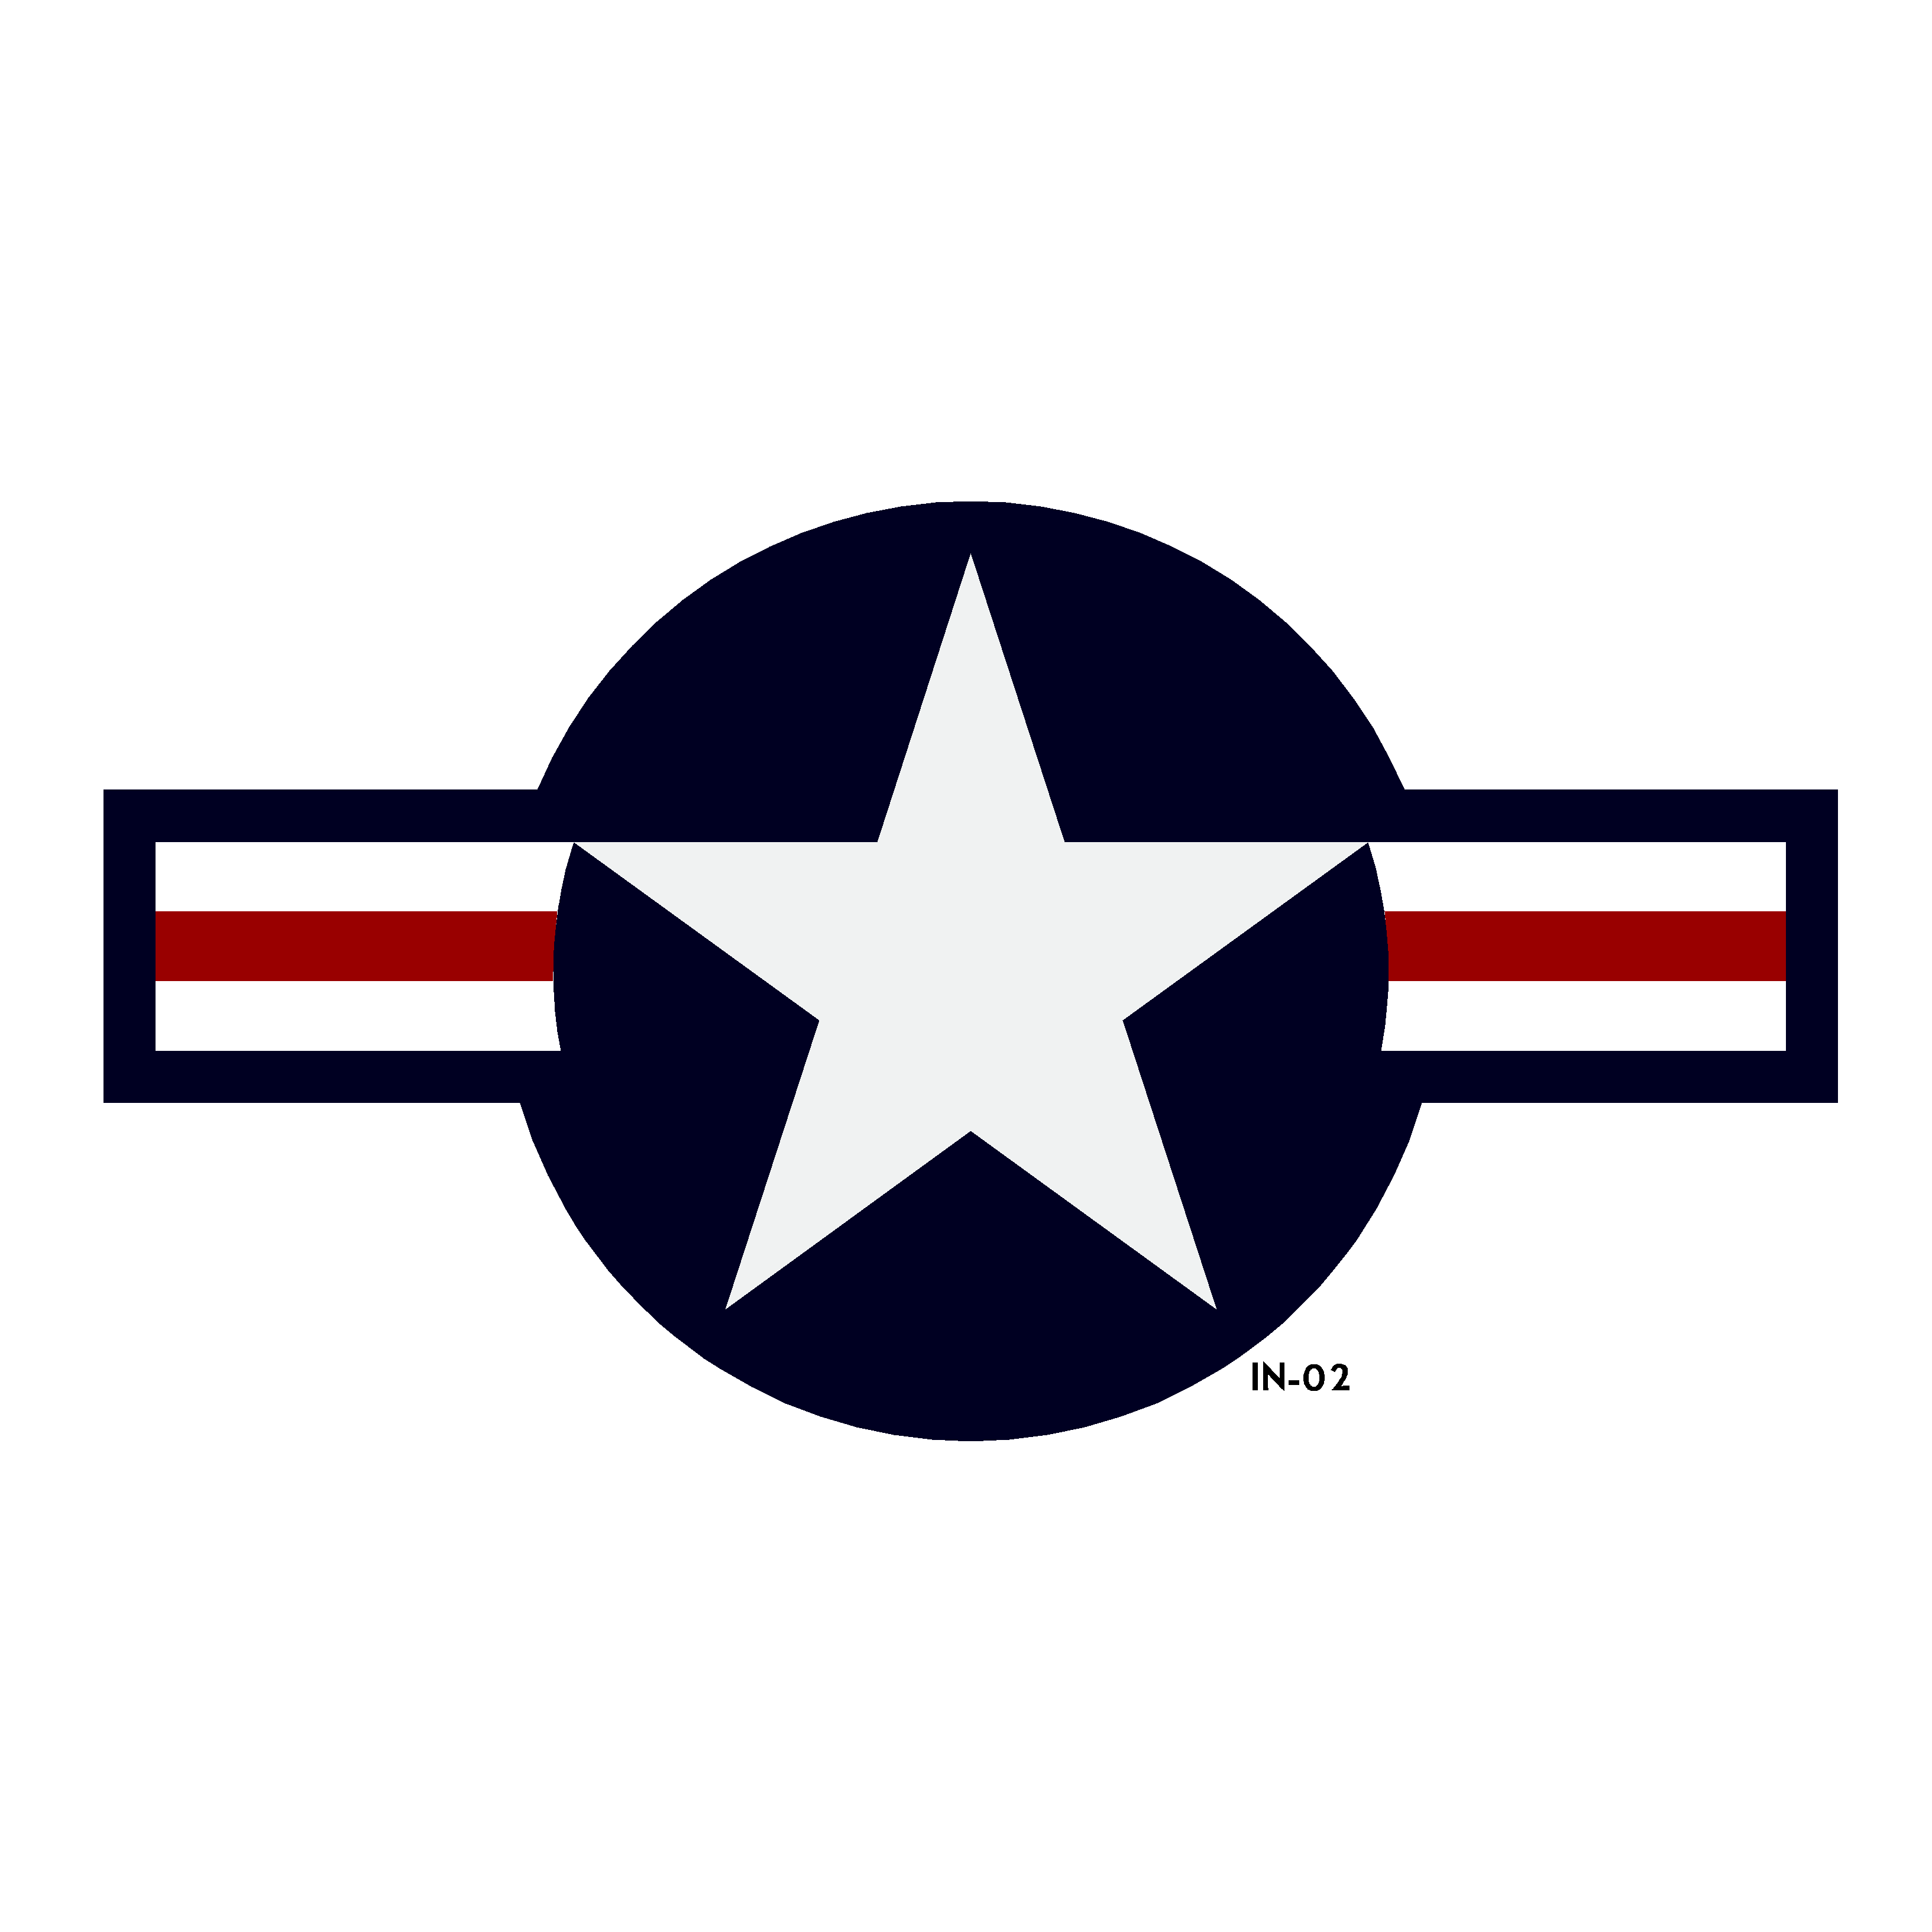 U.S. Army Air Force National Star and Bars Insignia - Spec. AN-I-9b